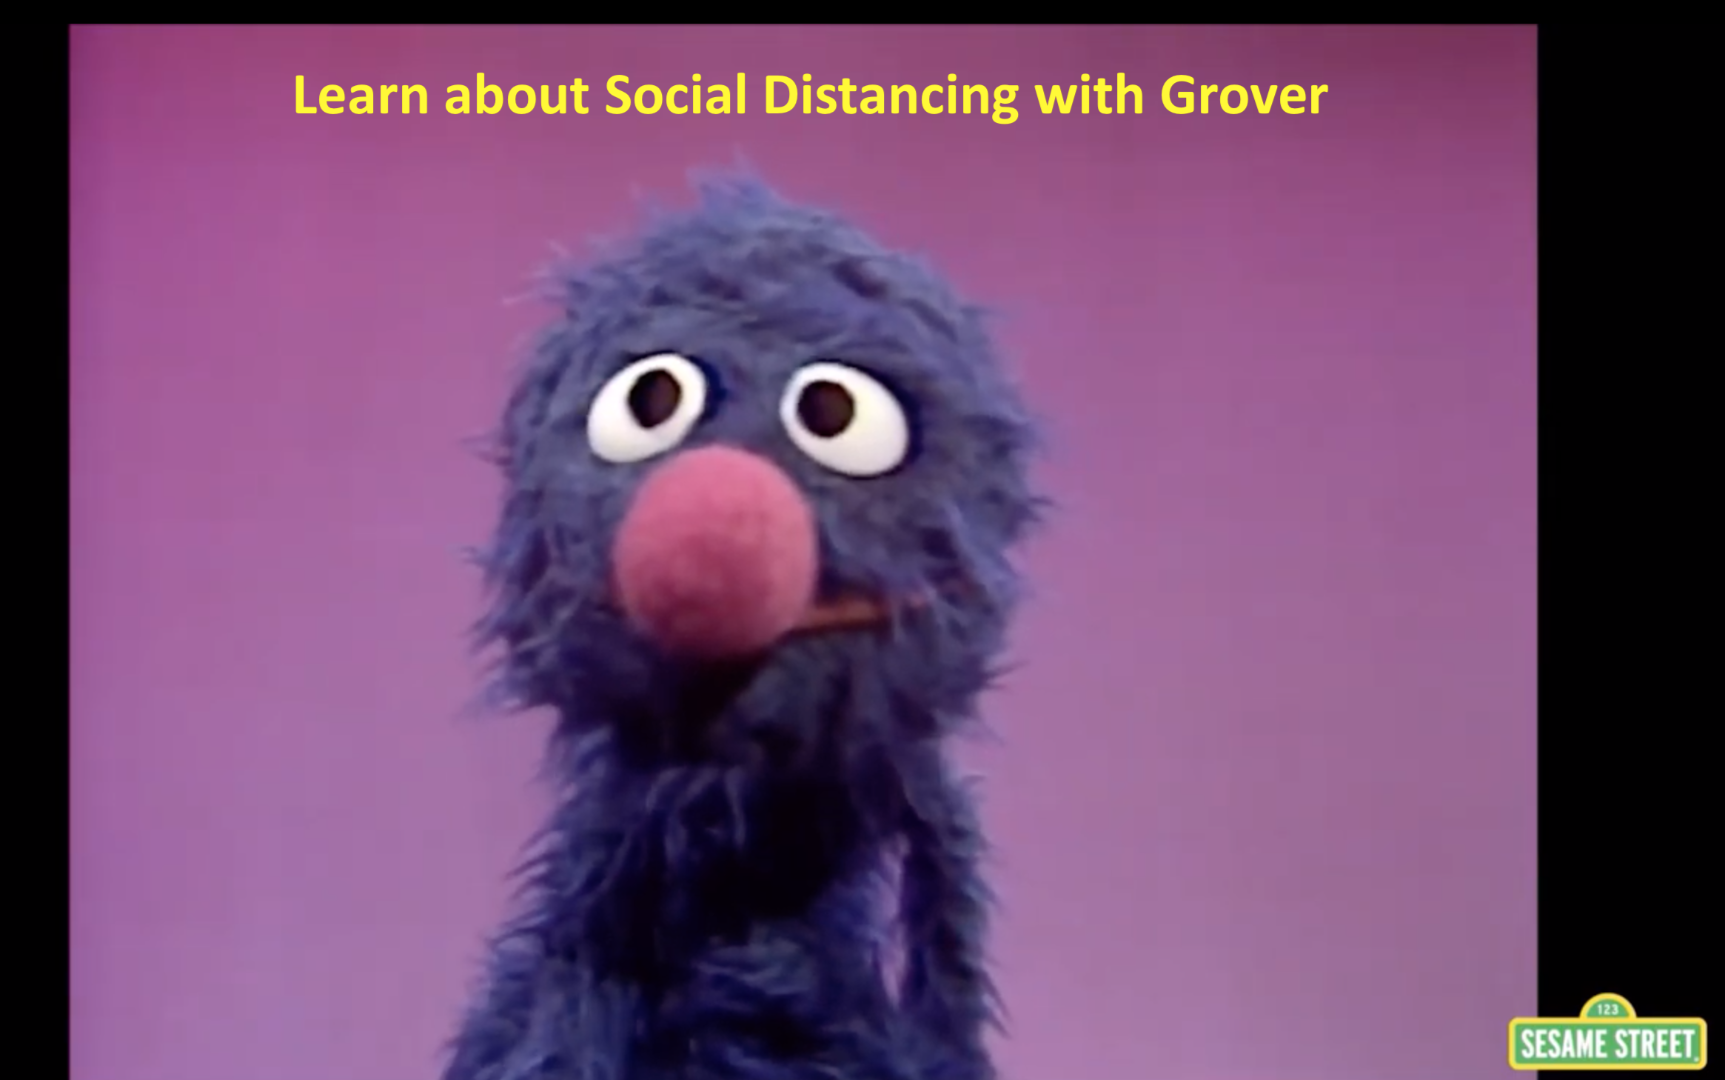 Learning with Grover